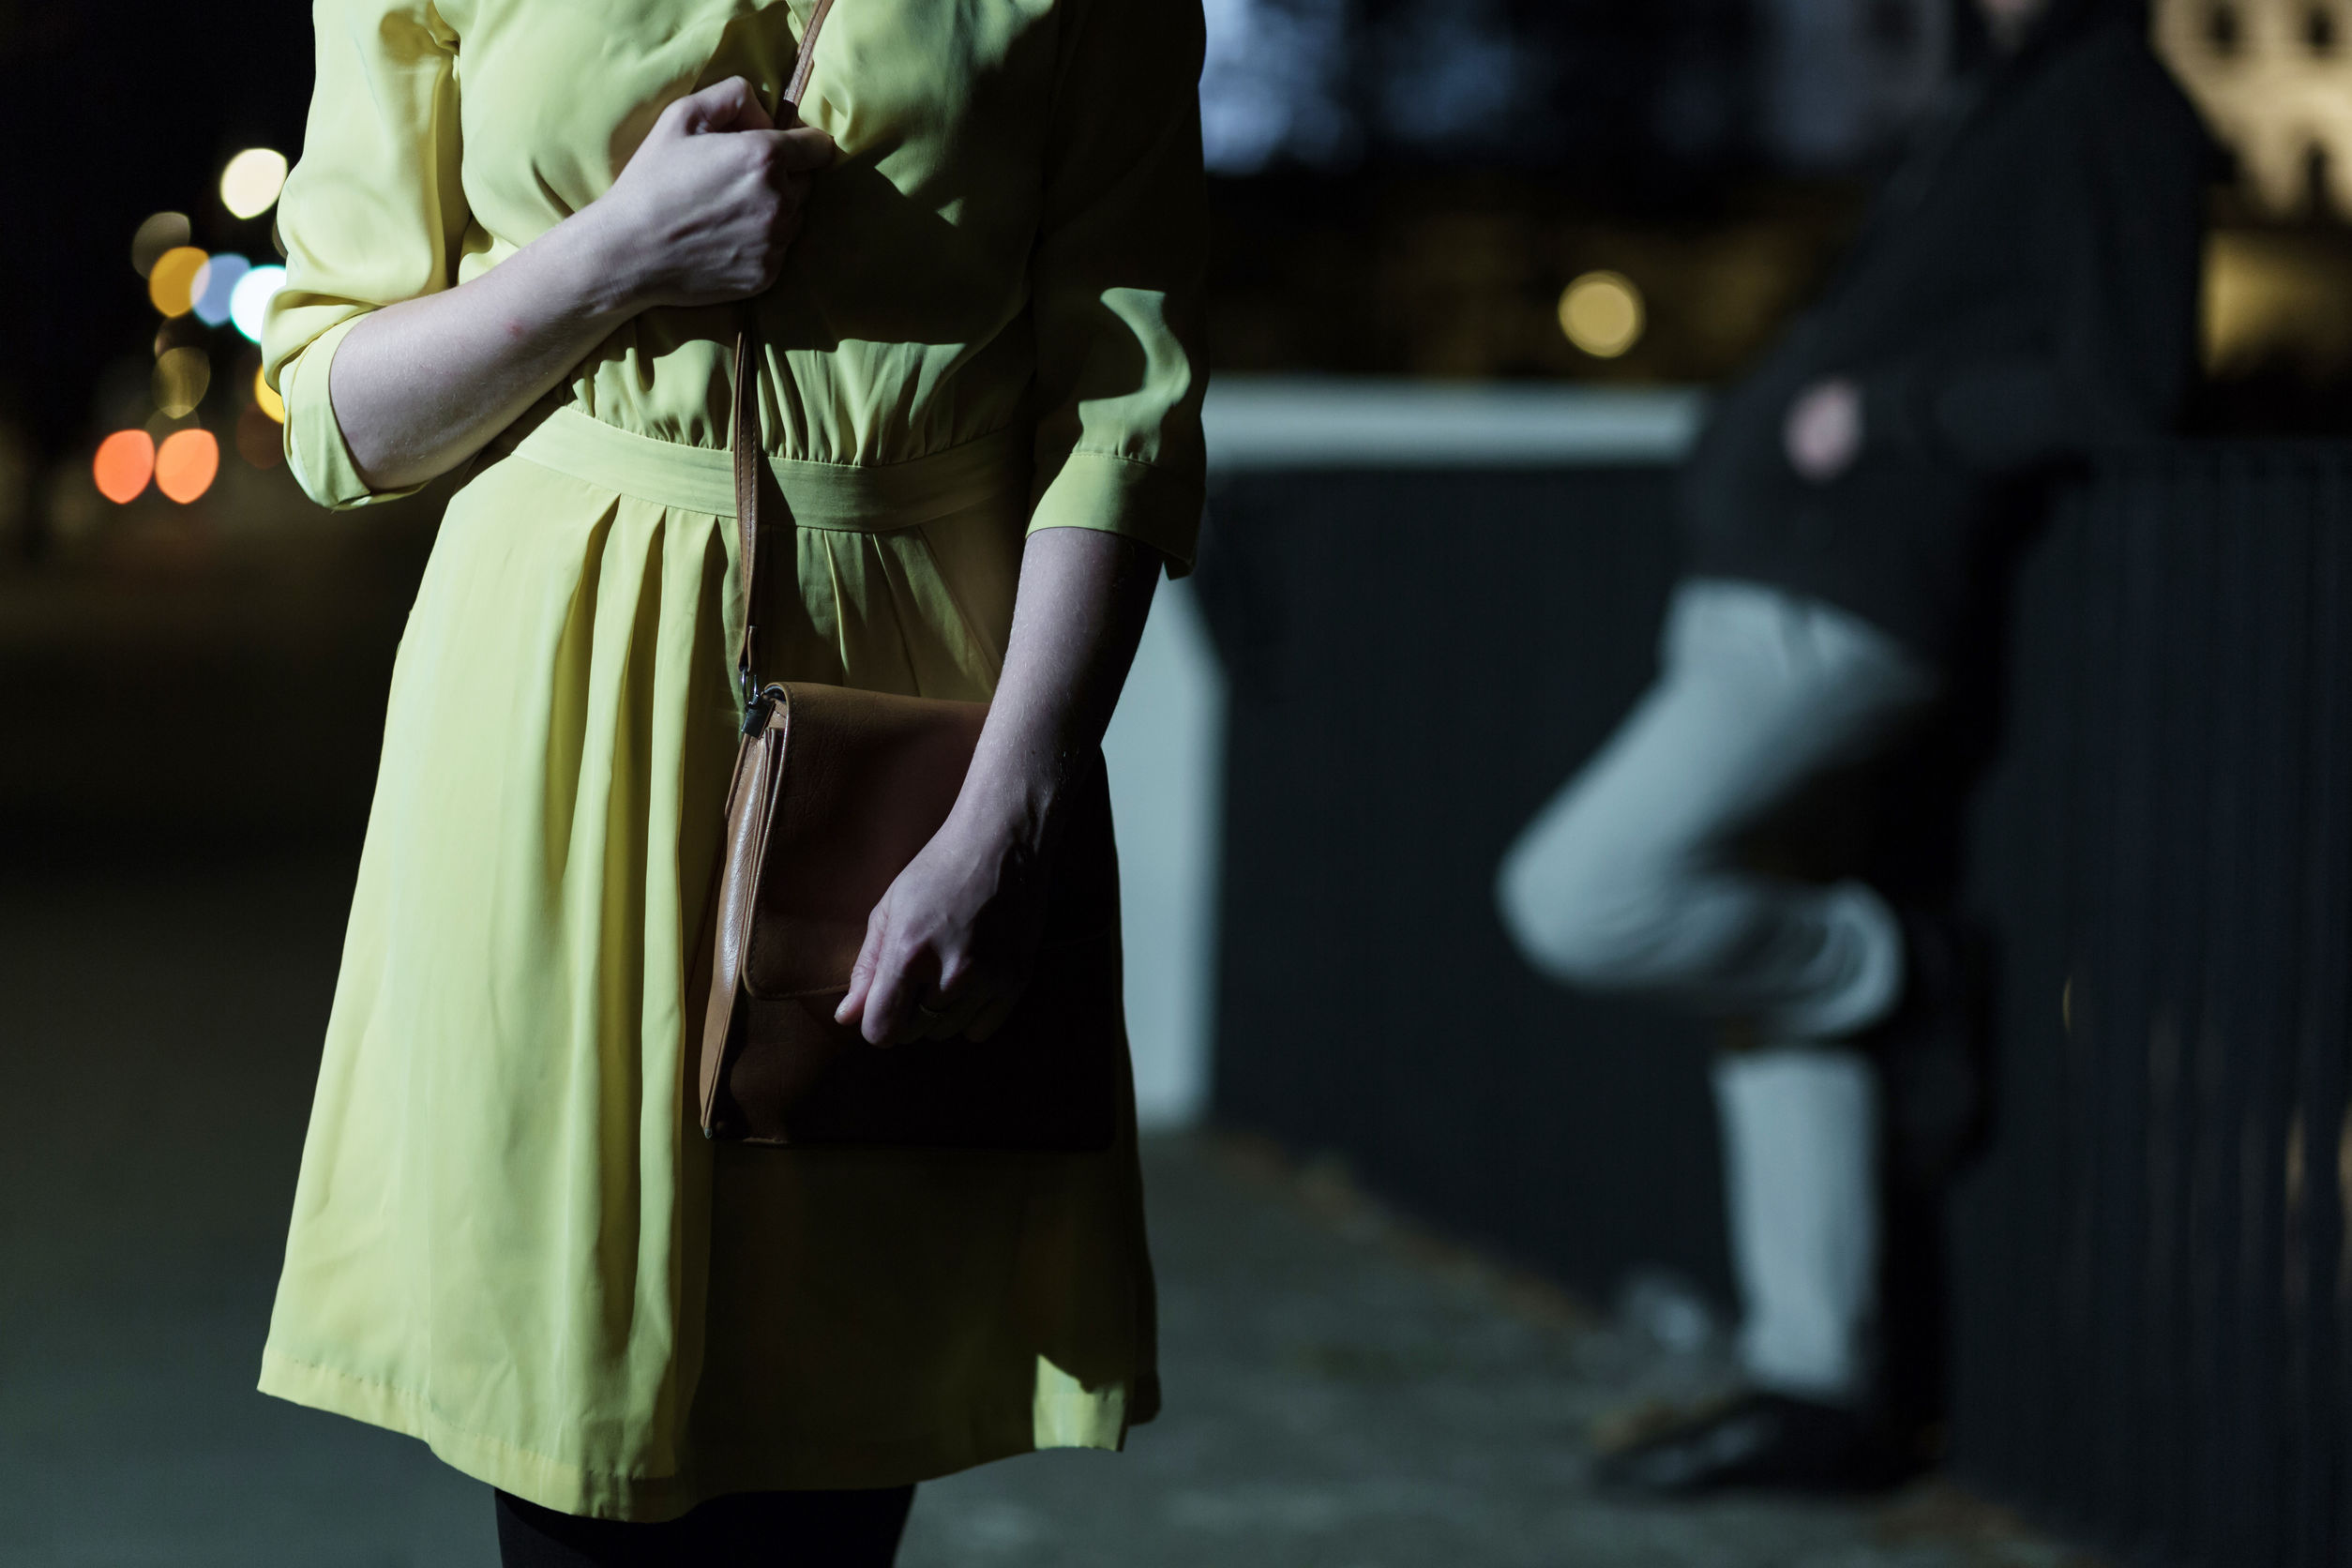 Article image for 'It's a blueprint for stalking and rape': Concerning online forum lists locations to approach women 'targets'